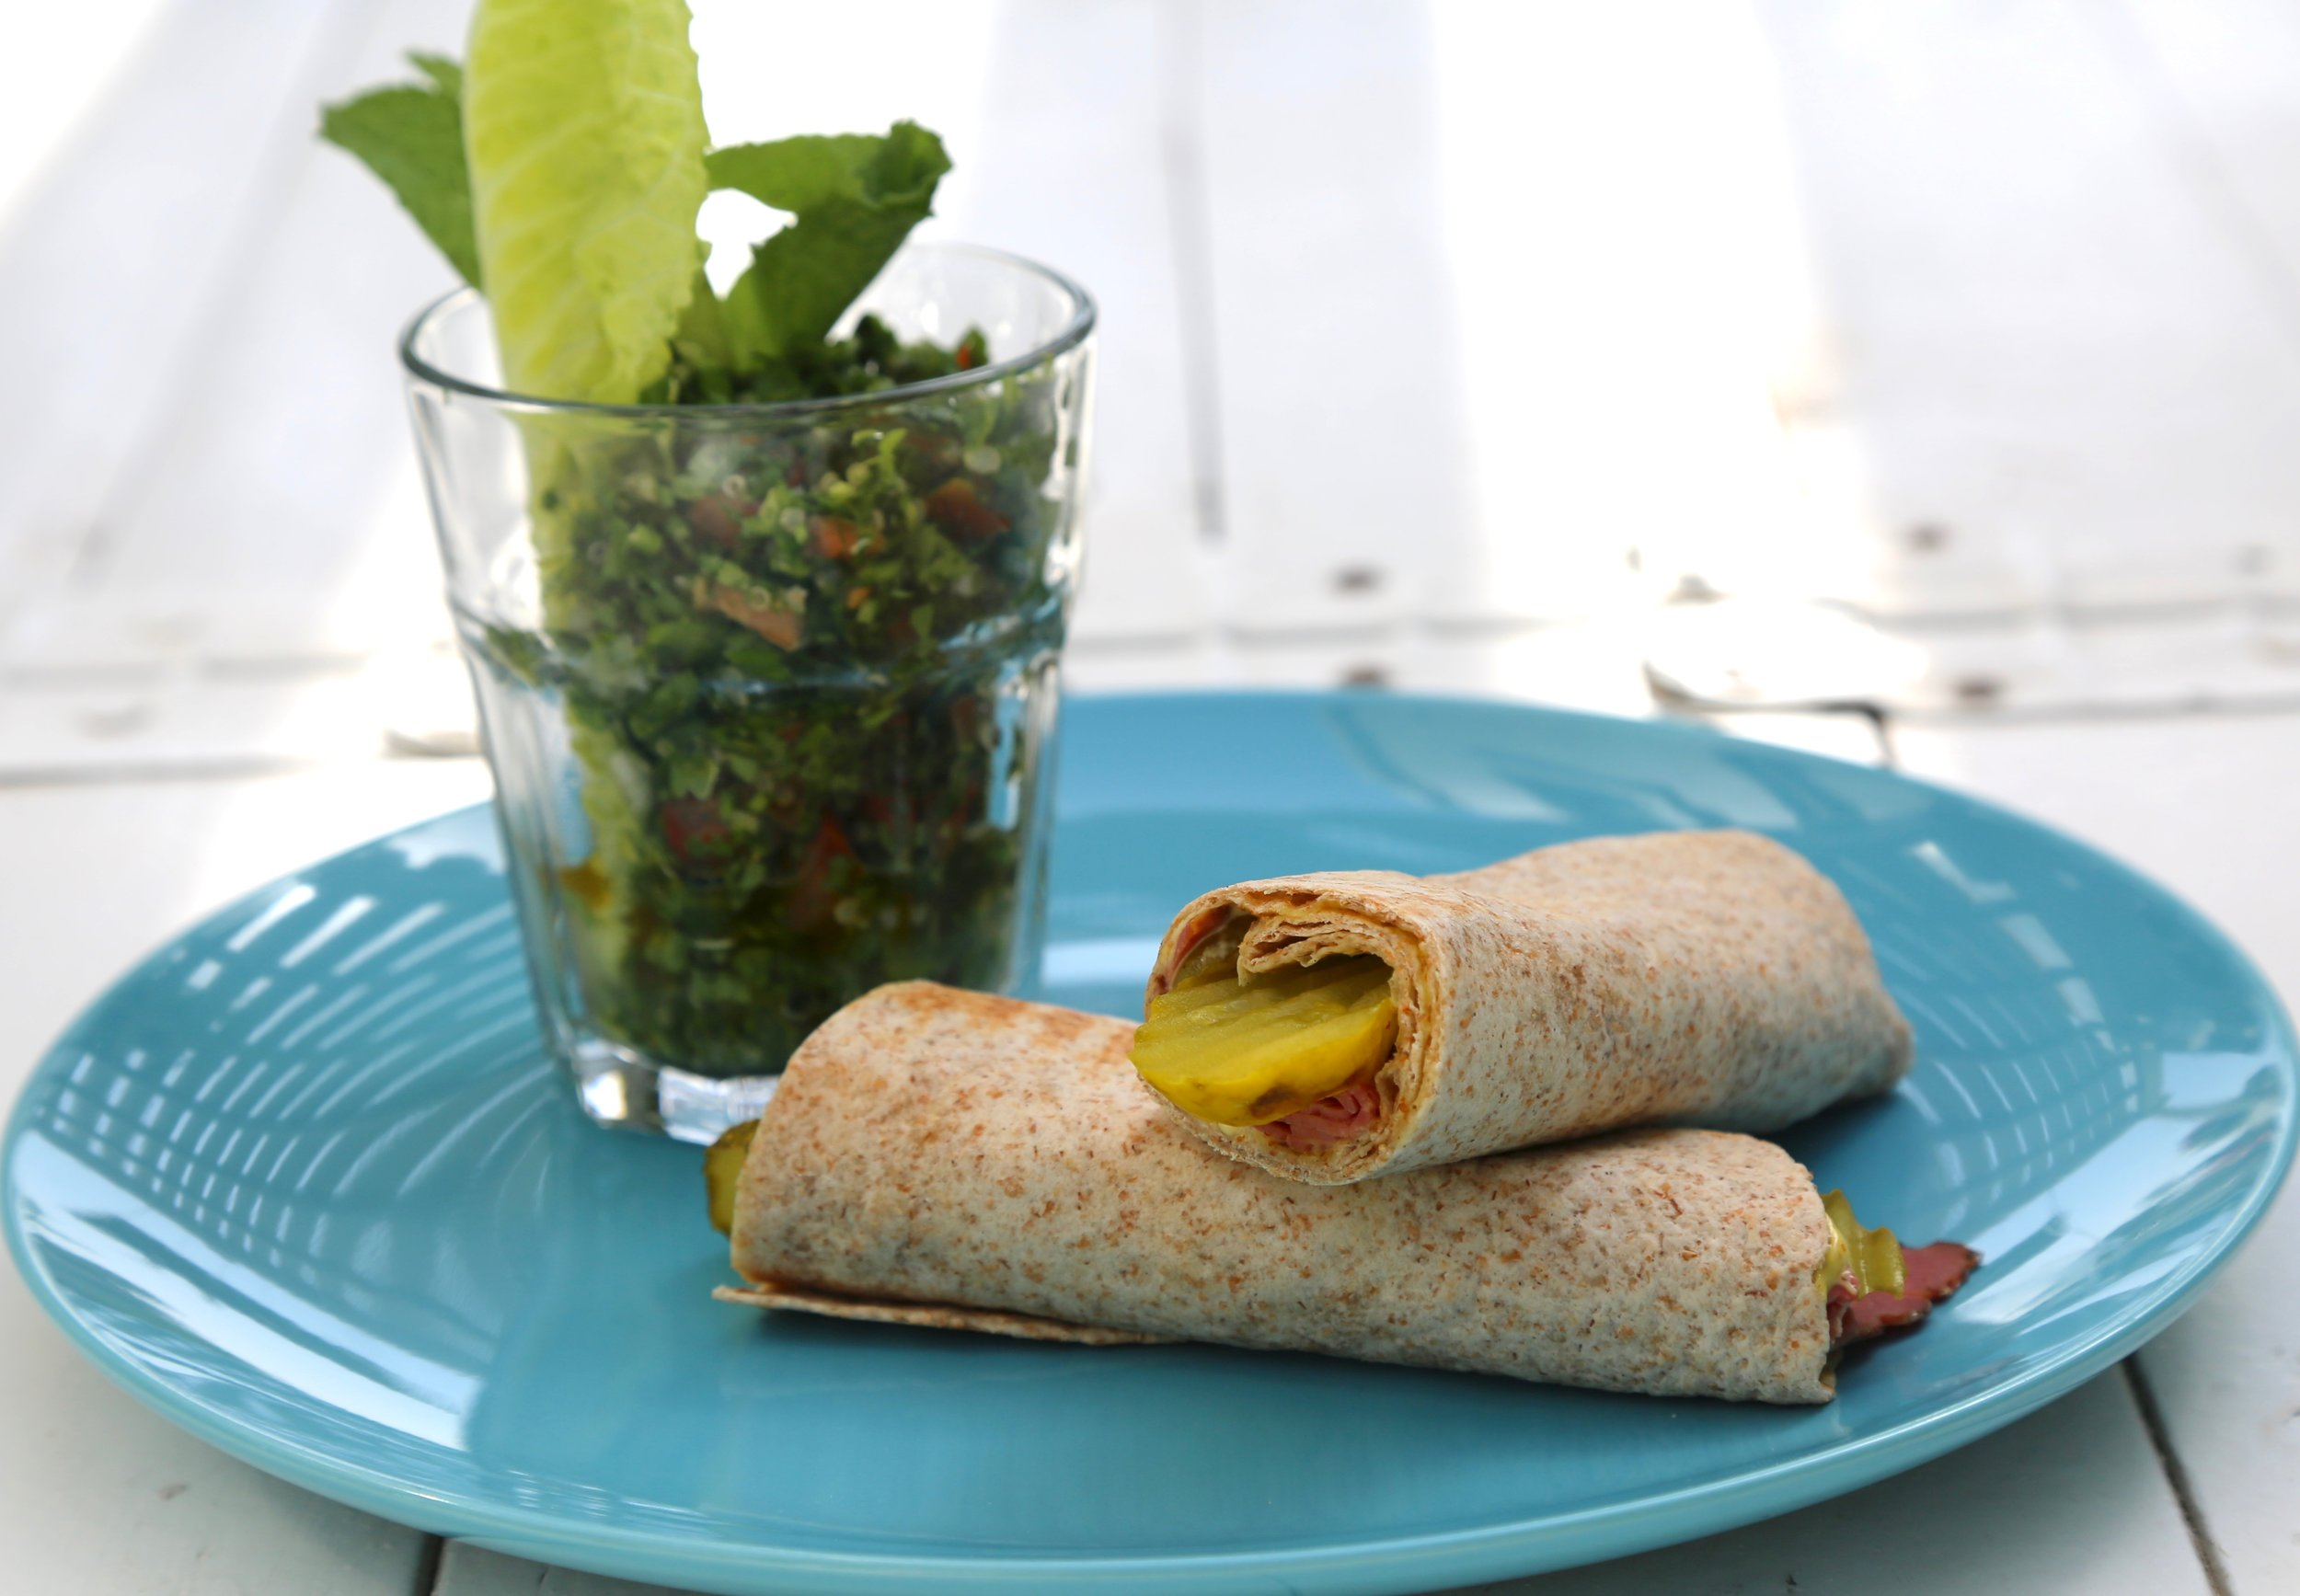 Roast Beef Wrap: Roast beef, pickles and mustard  served with tabbouleh salad